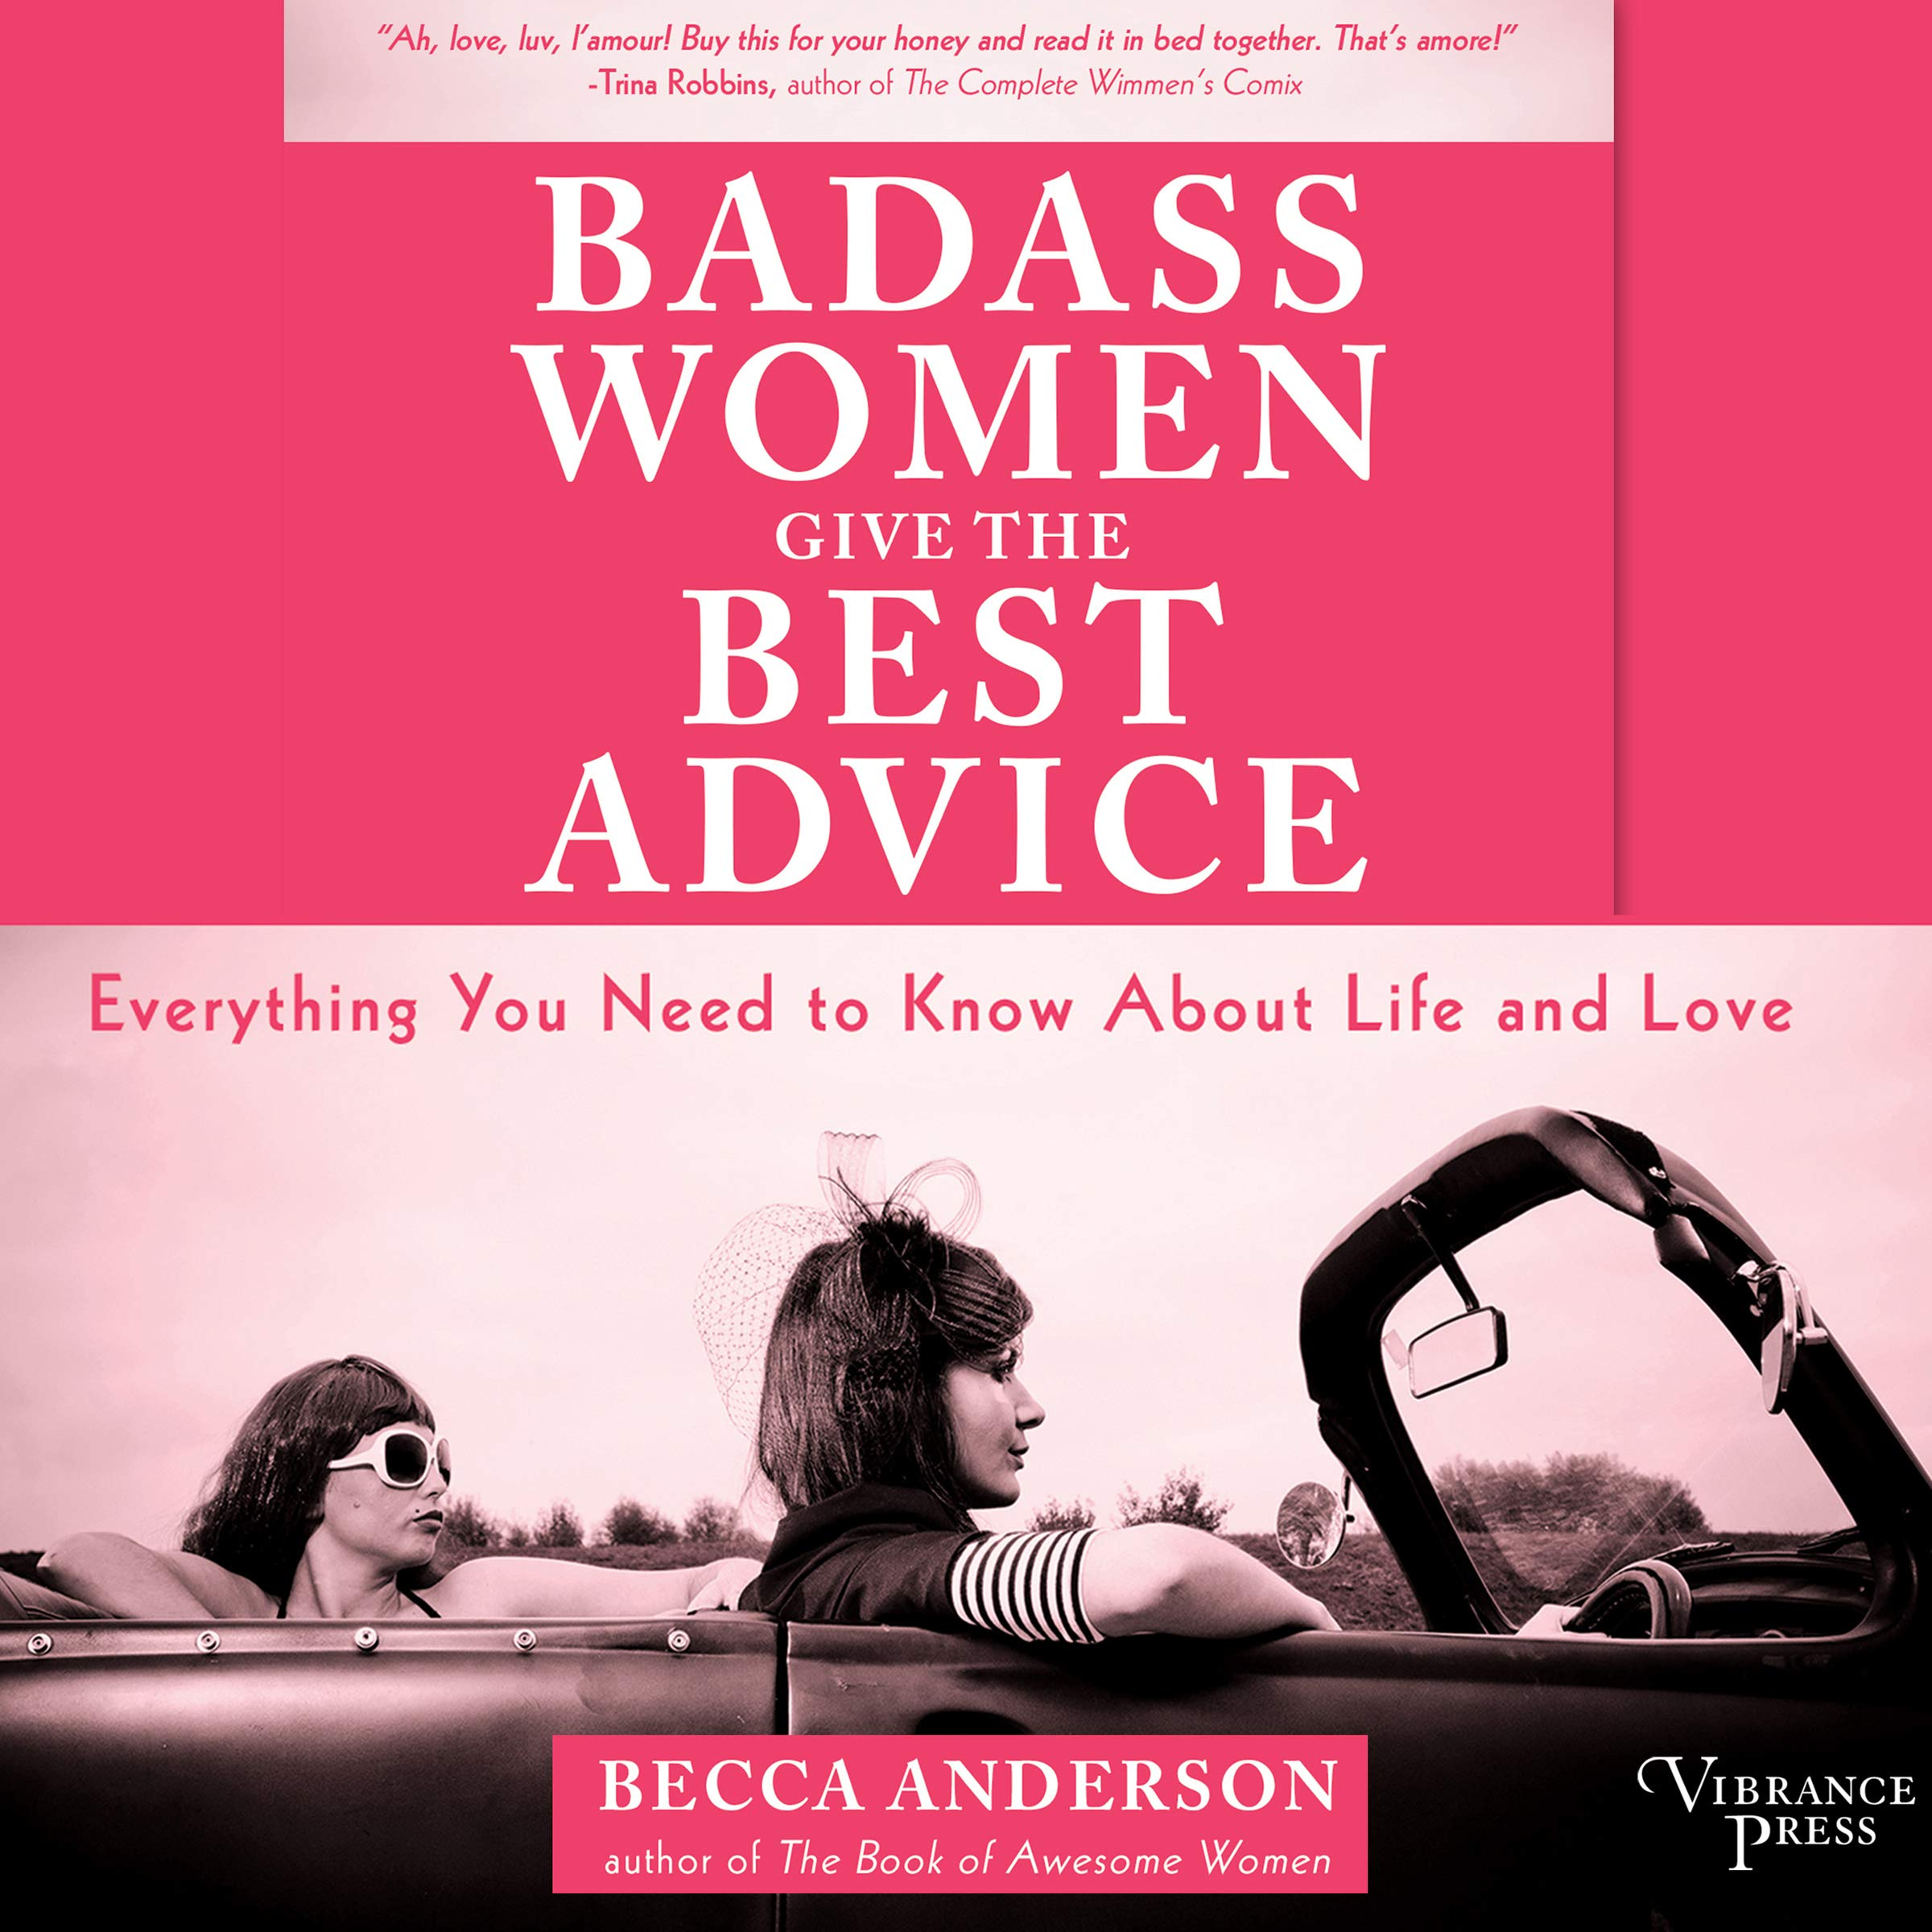 Badass Women Give the Best Advice